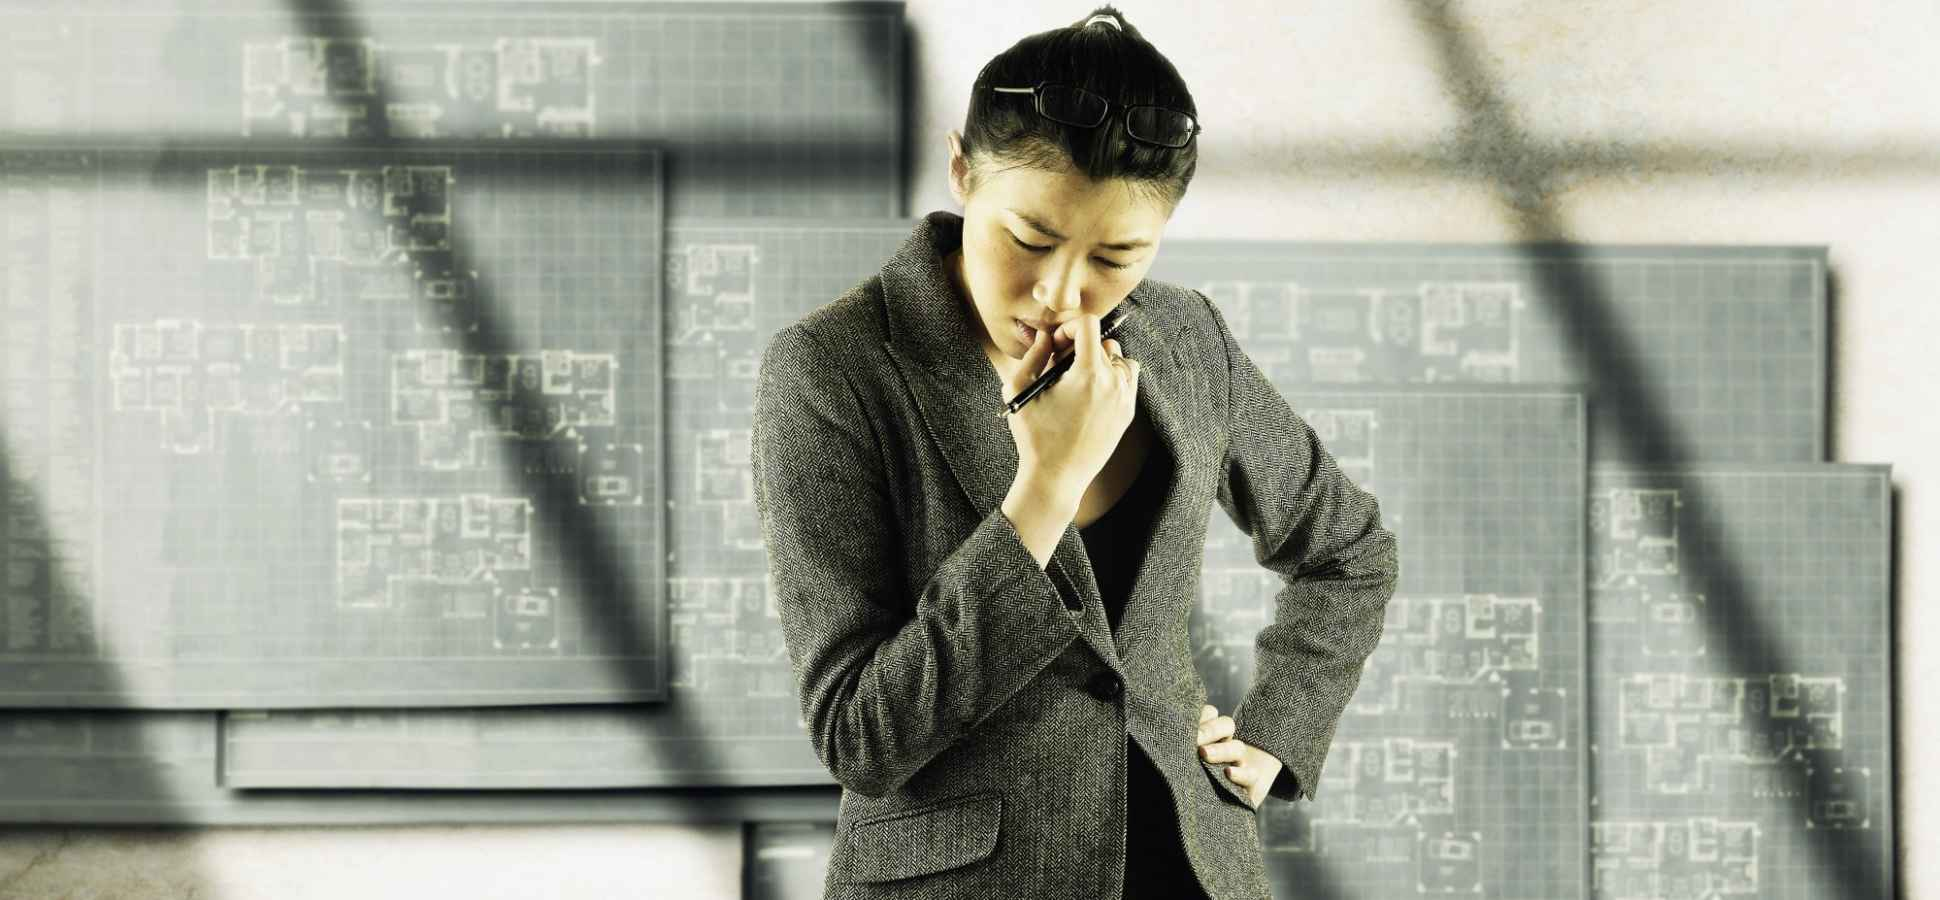 11 Common Habits That Make You Look Unprofessional